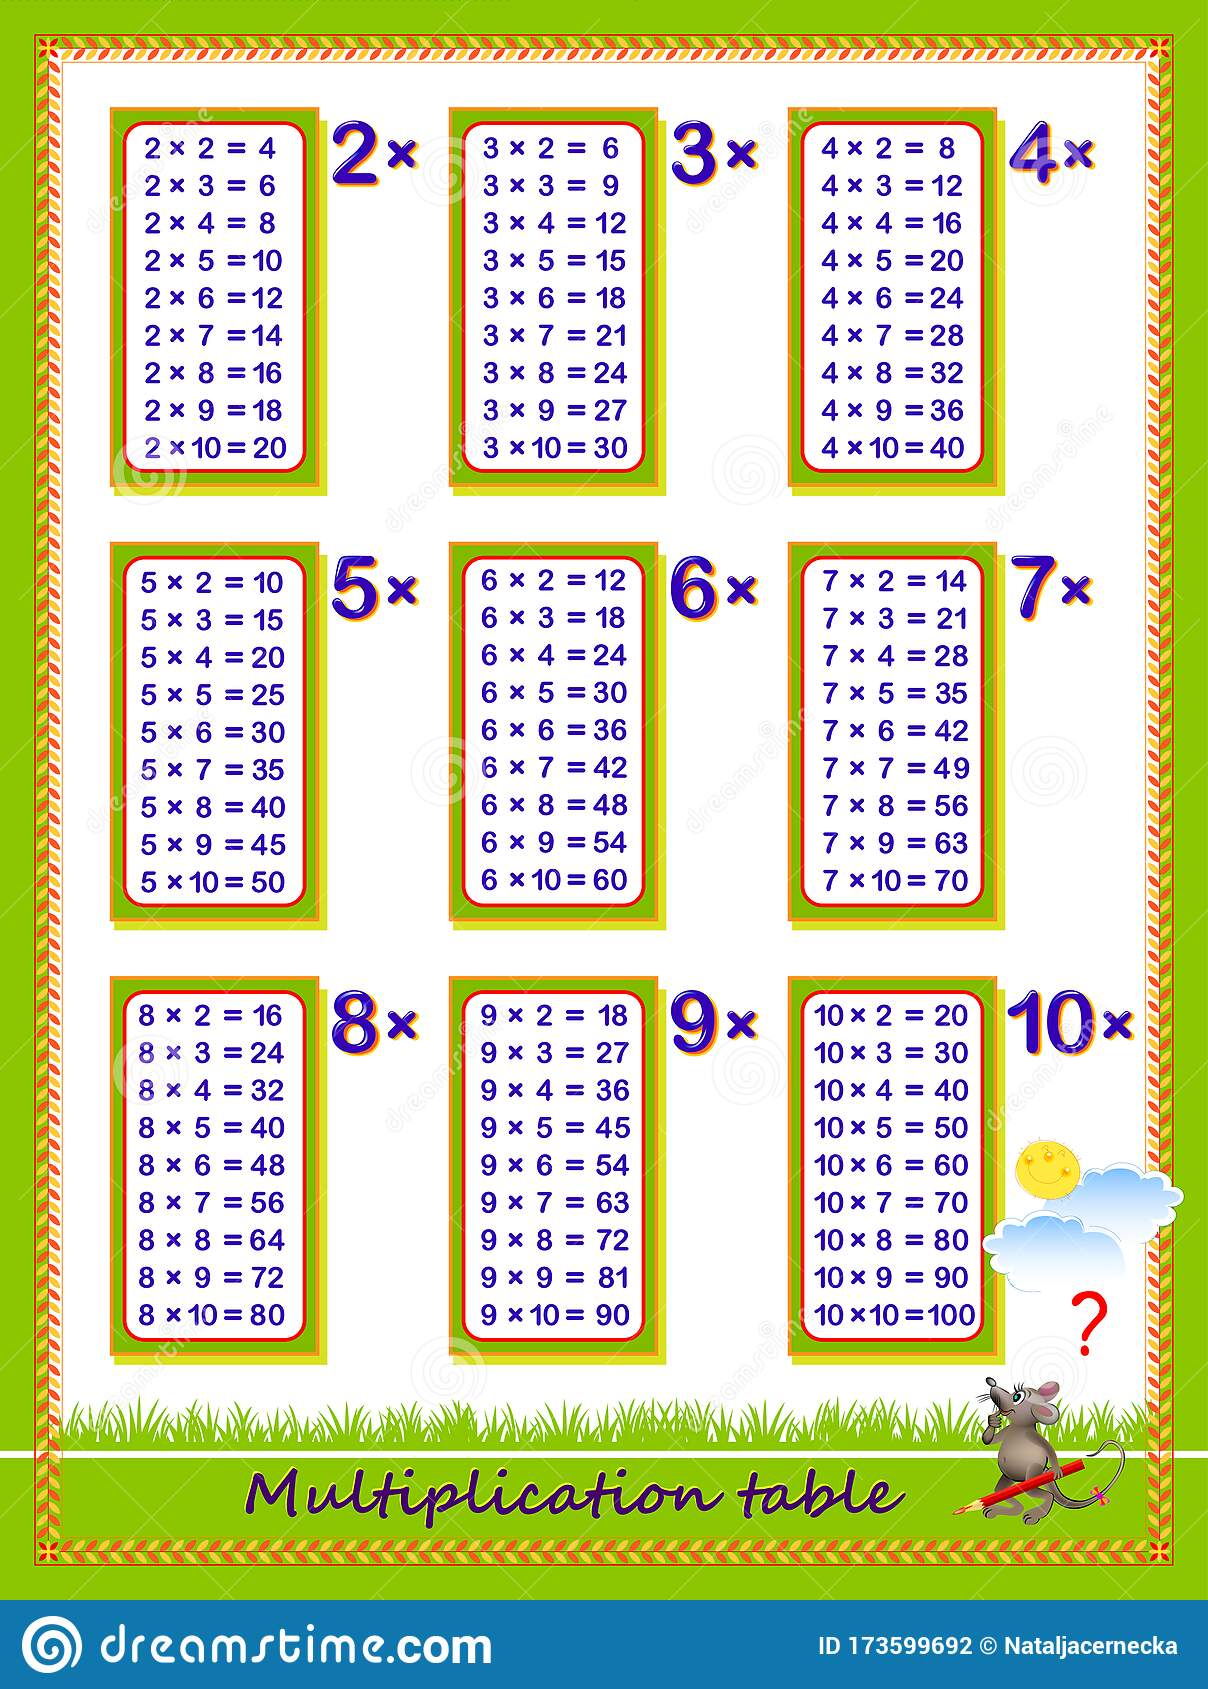 Multiplication Table For Kids Math Education Printable